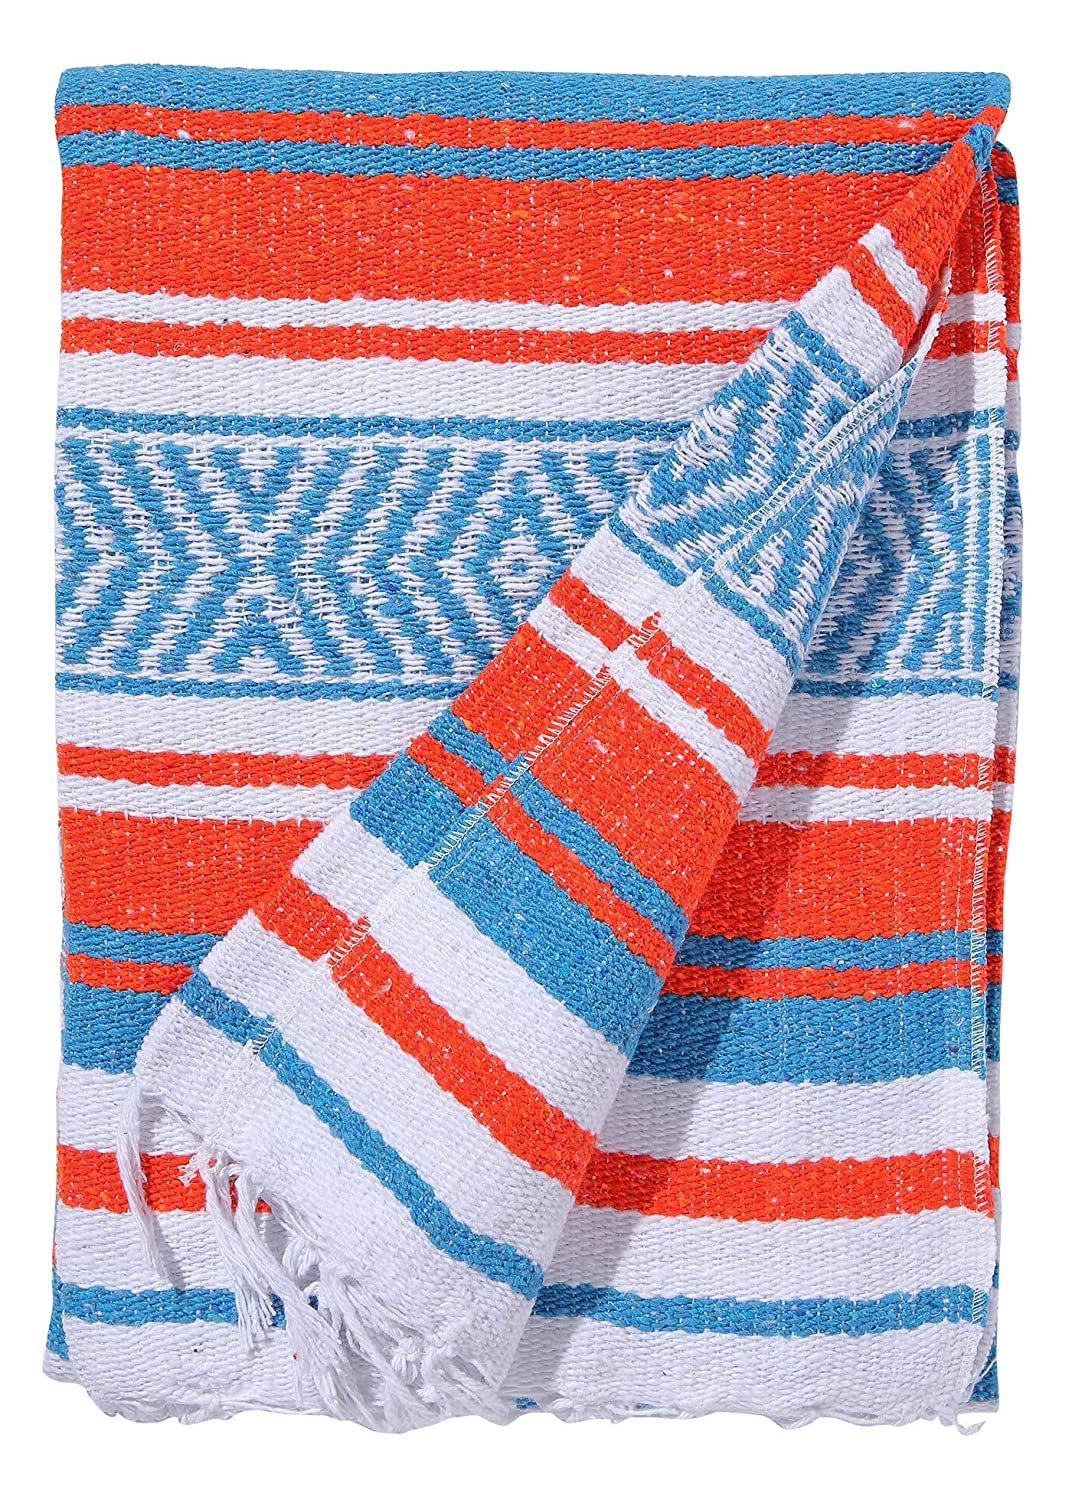 El Paso Designs Mexican Yoga Blanket Colorful 51in x 74in Studio Mexican Falsa Blanket Ideal for Yoga, Camping, Picnic, Beach Blanket, Bedding, Home ...